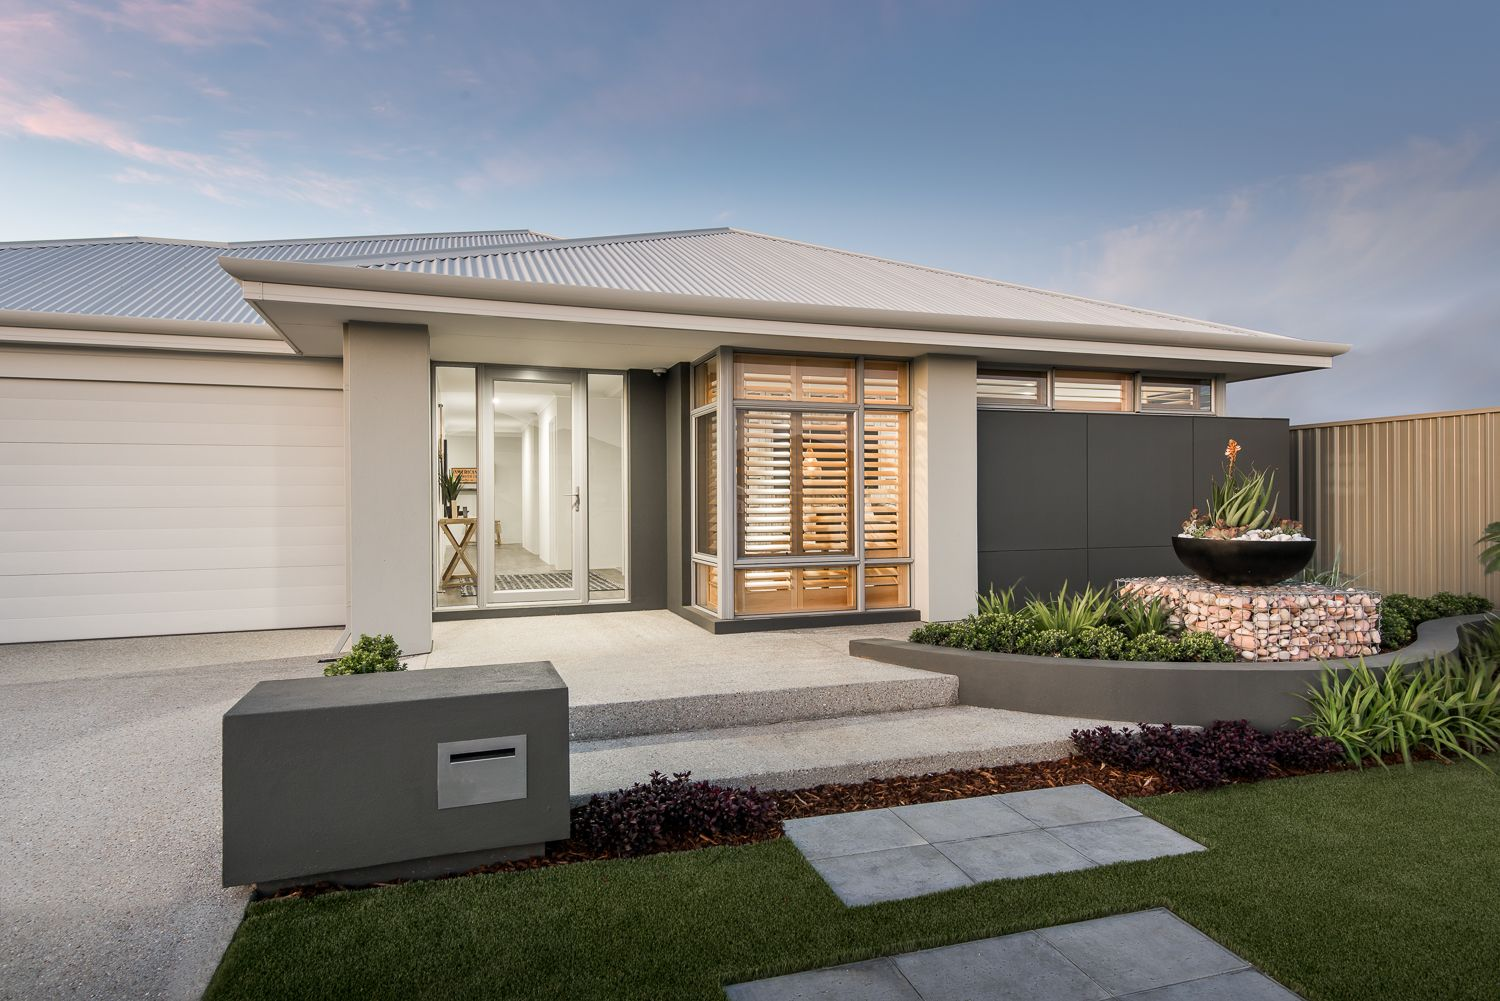 House And Land Packages Perth WA | New Homes | Home Designs | Marrakech |  Dale Alcock | Dream House Exterior** | Pinterest | Marrakech, Perth And  House